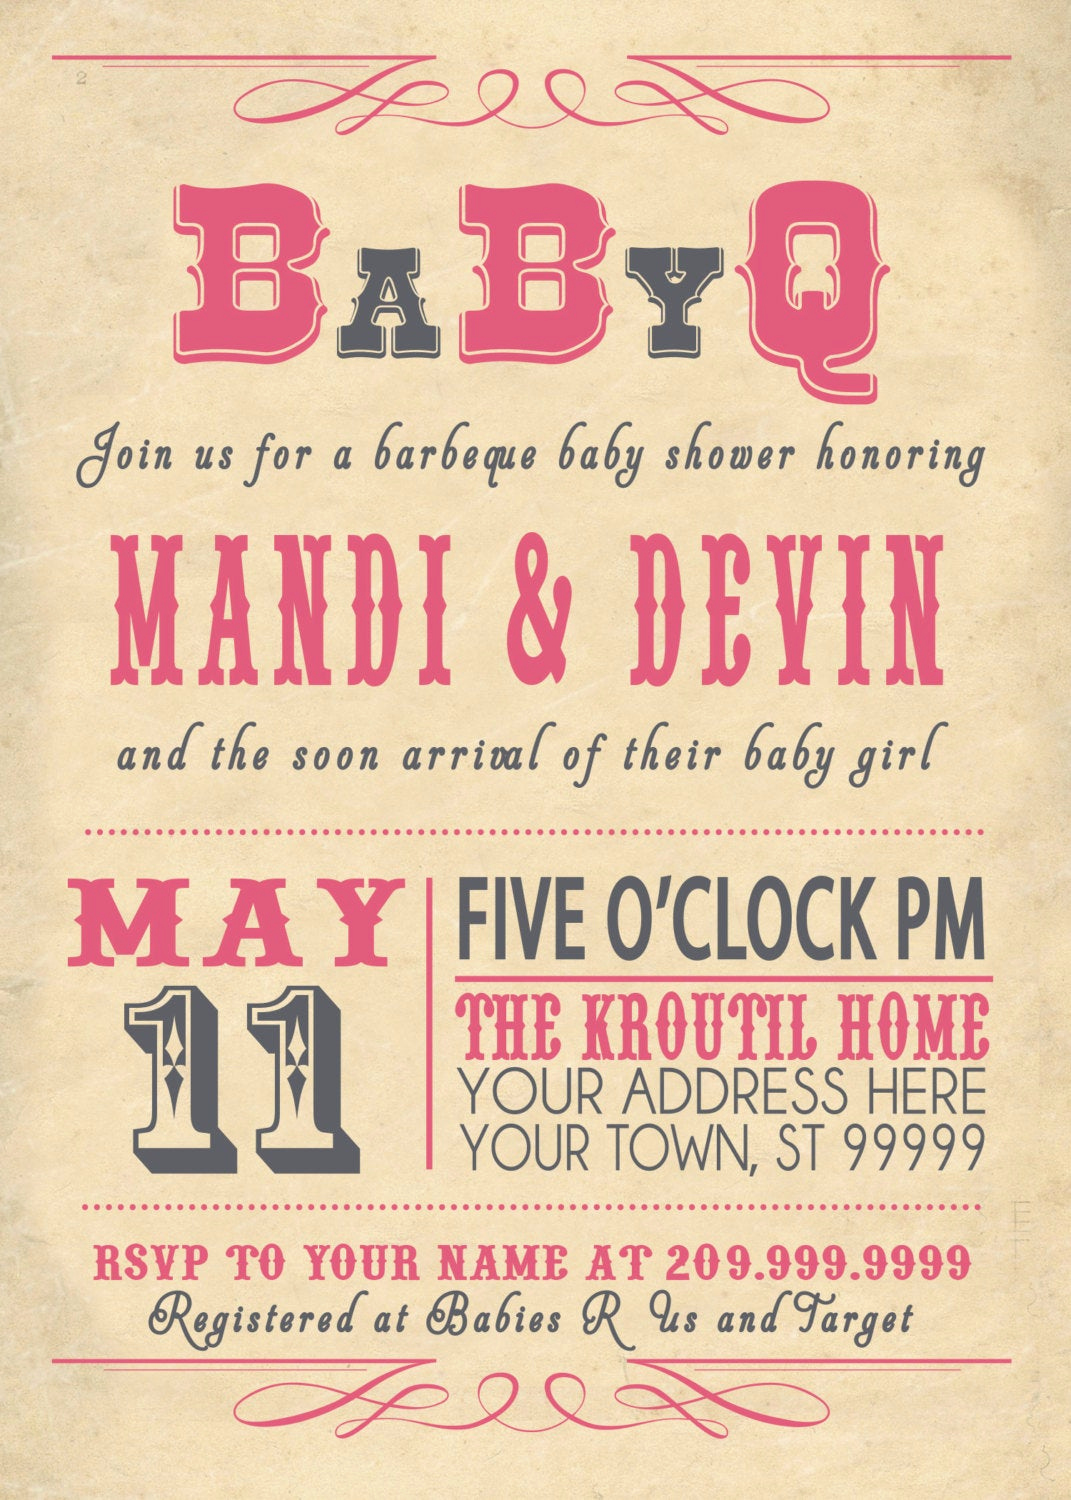 Coed Baby Shower Invitation Templates Unique Babyq Bbq Baby Shower Invitation Vintage Couples